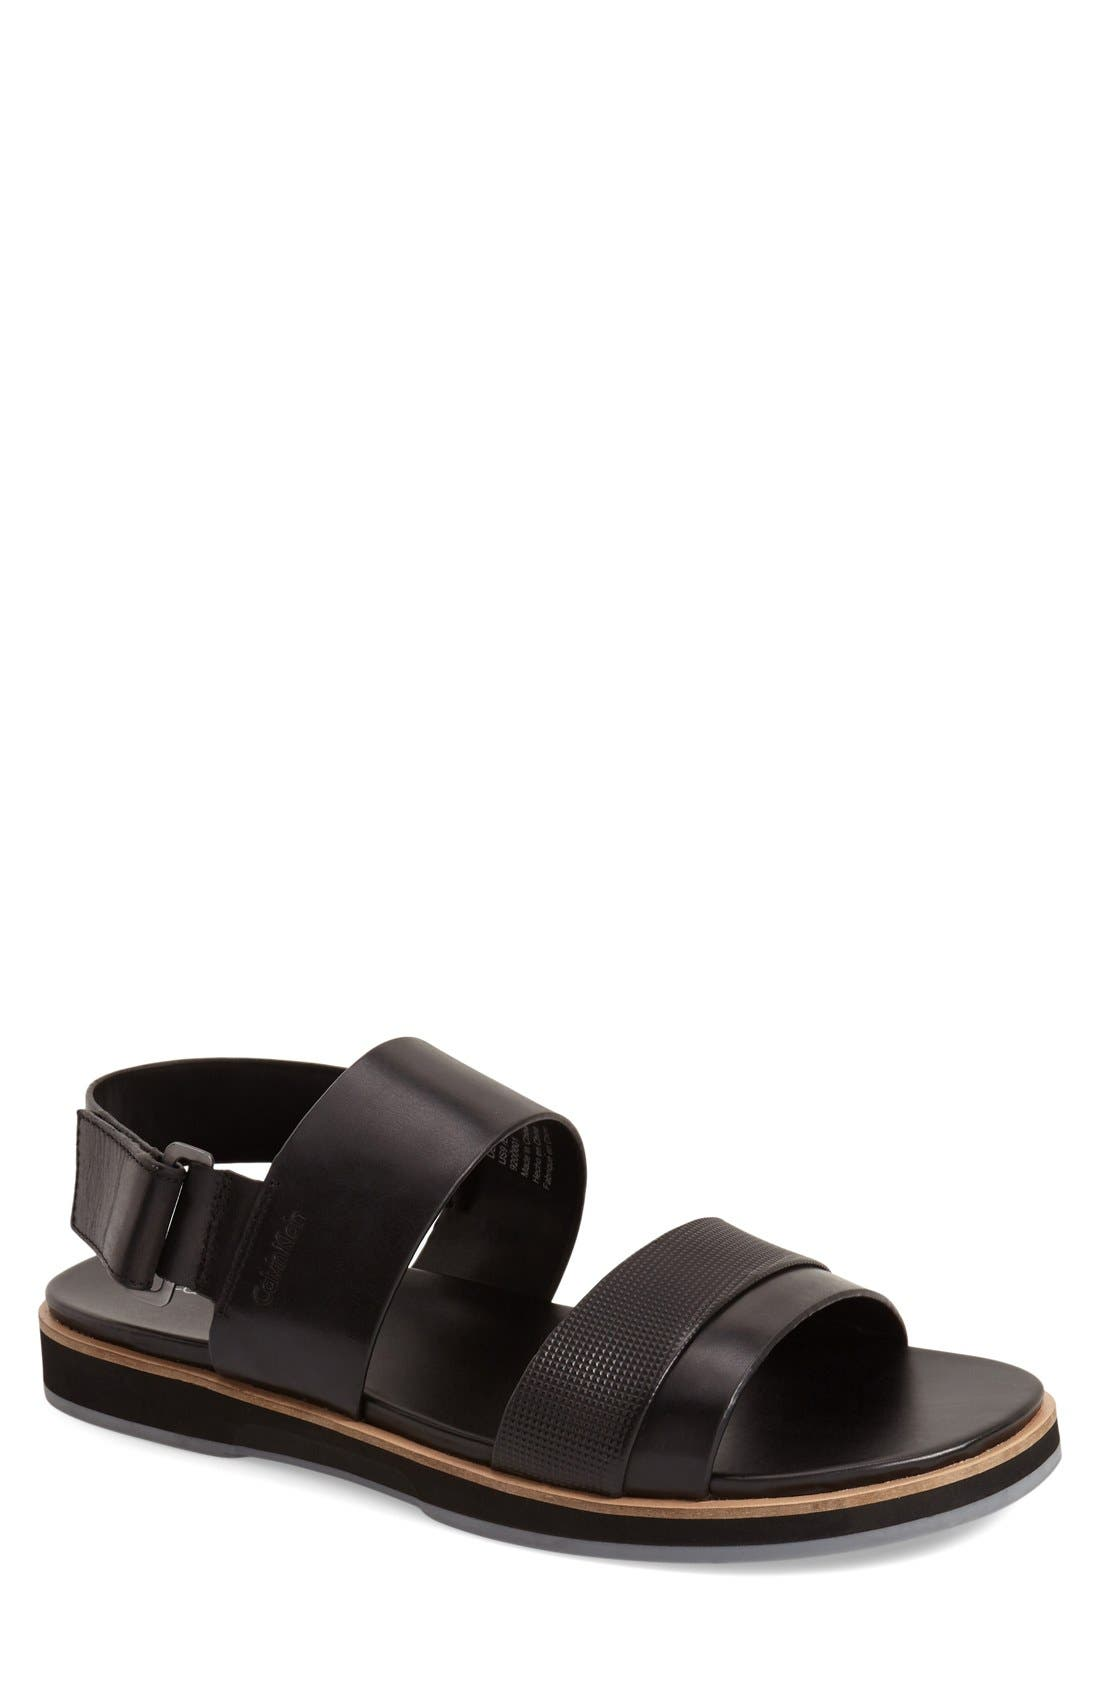 'Dex' Embossed Leather Sandal,                             Main thumbnail 1, color,